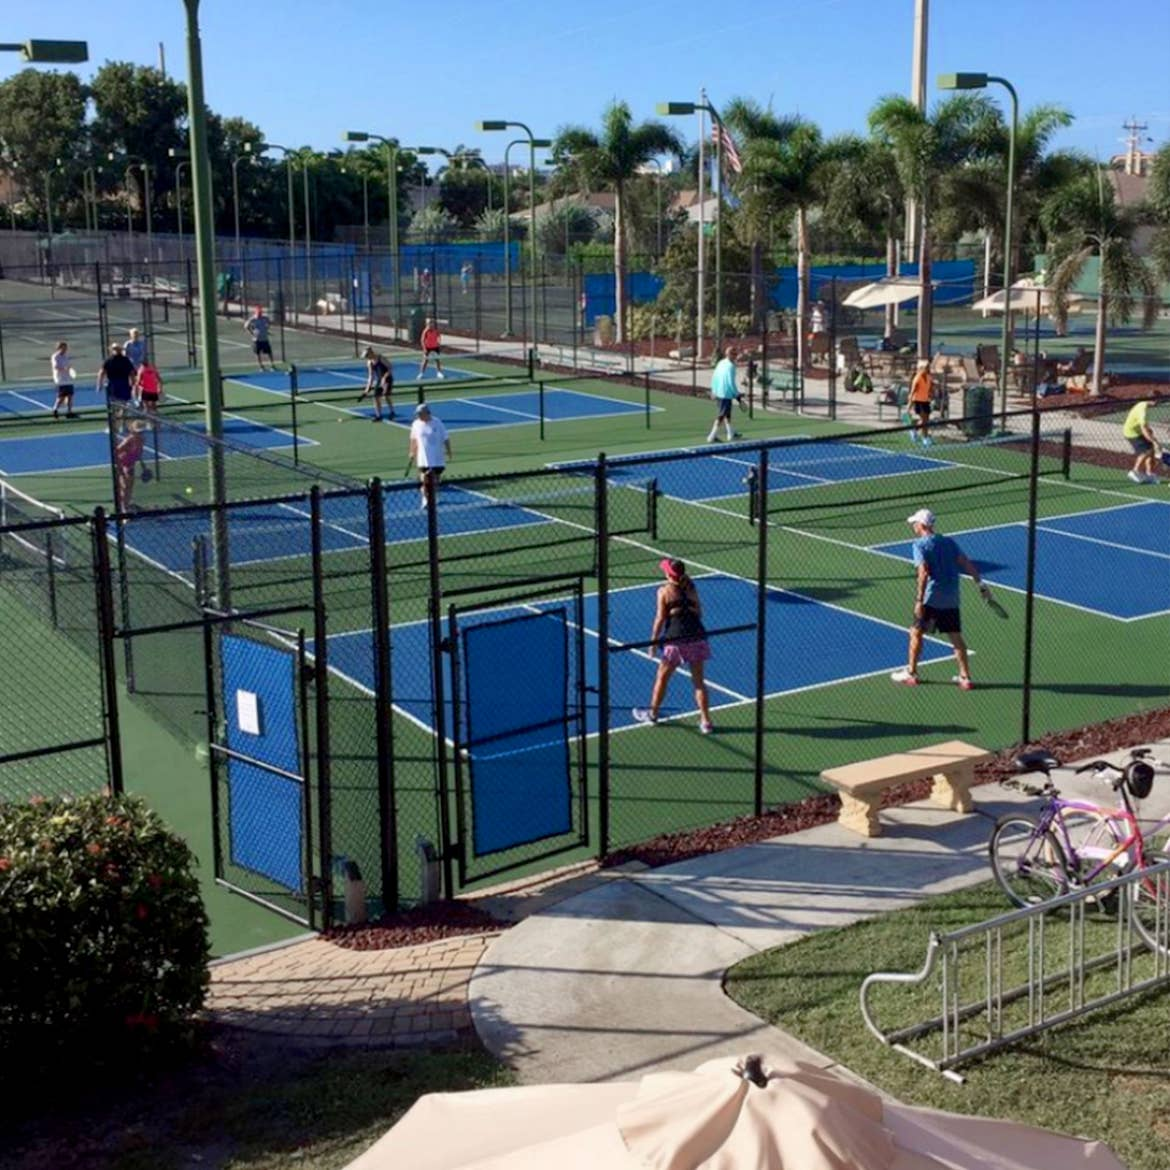 Multiple pickleball courts filled with players under a blue sky and surrounded by palm trees.